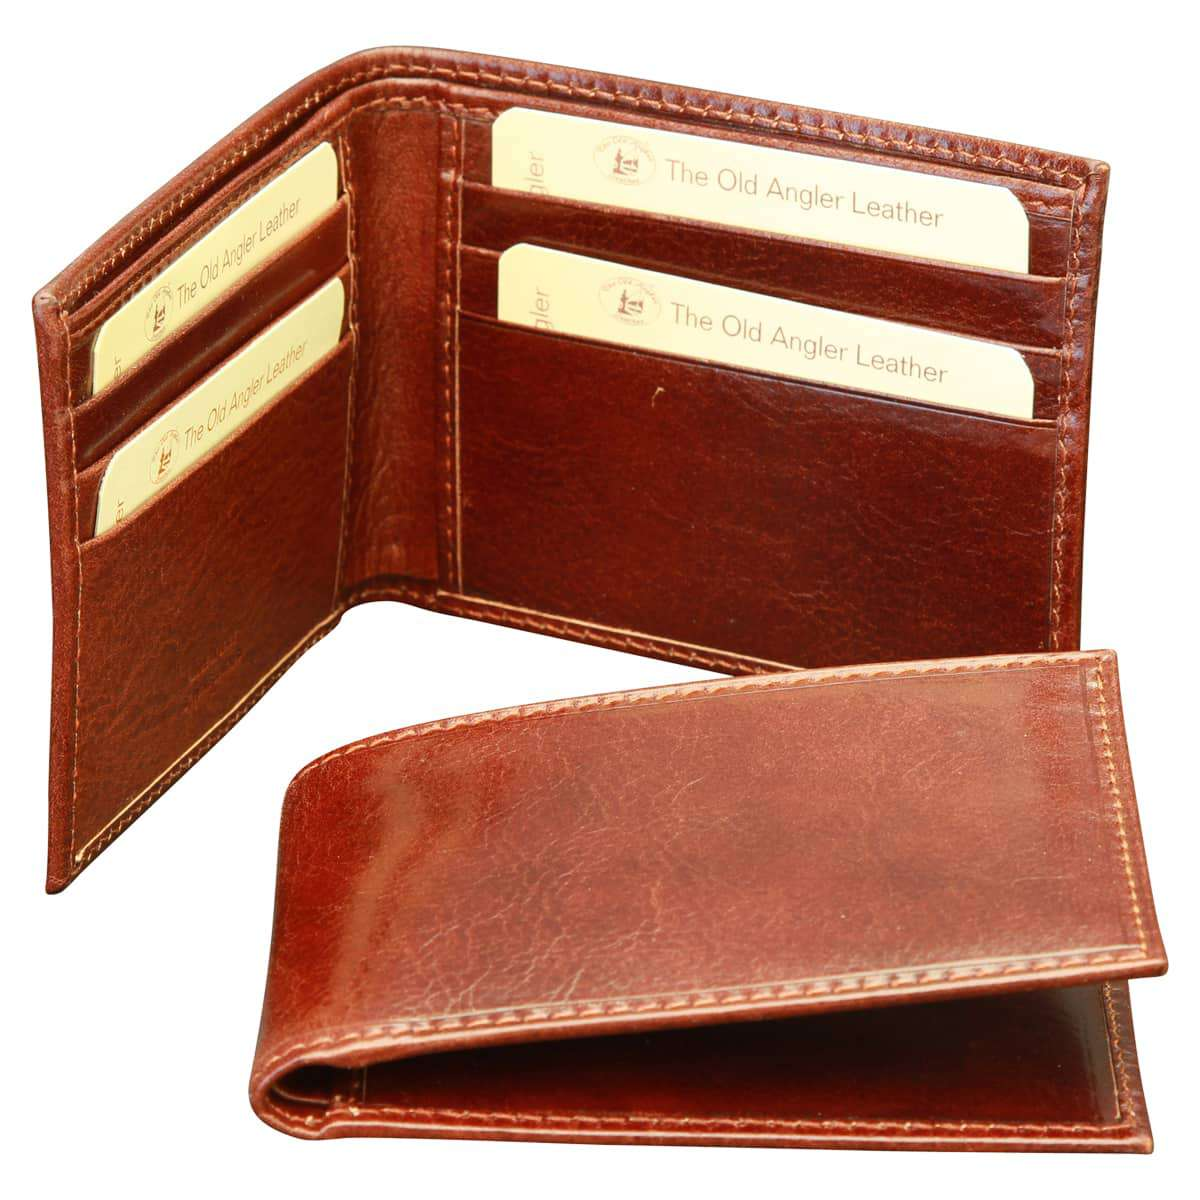 Bifold wallet - Brown | 802605MA UK | Old Angler Firenze